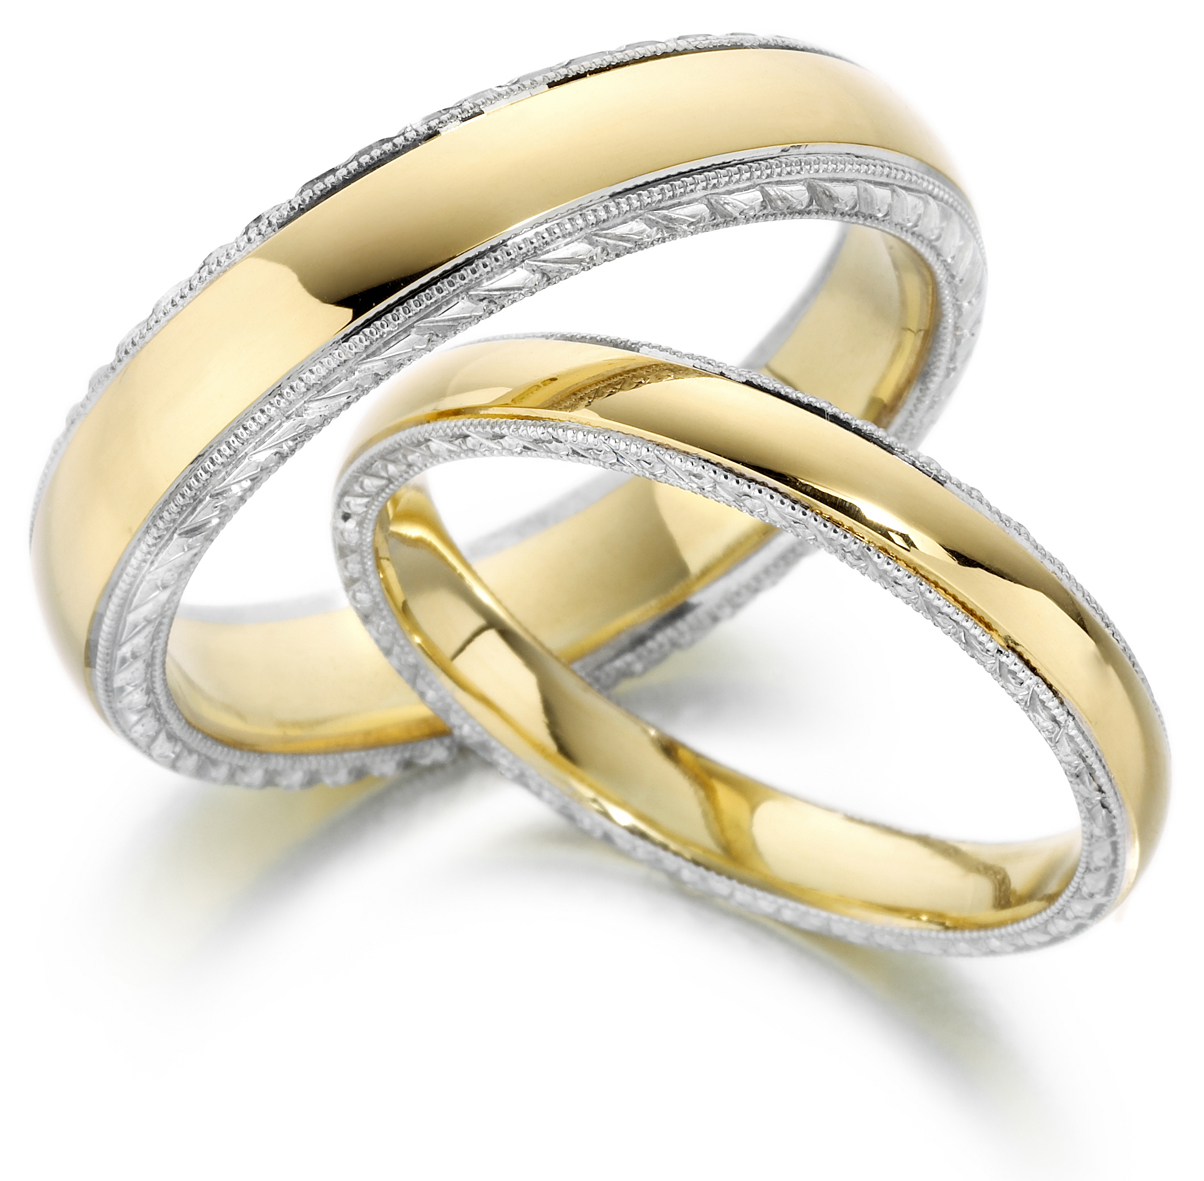 Wedding Rings Archives Helen Burrell goldsmith fine jewellery